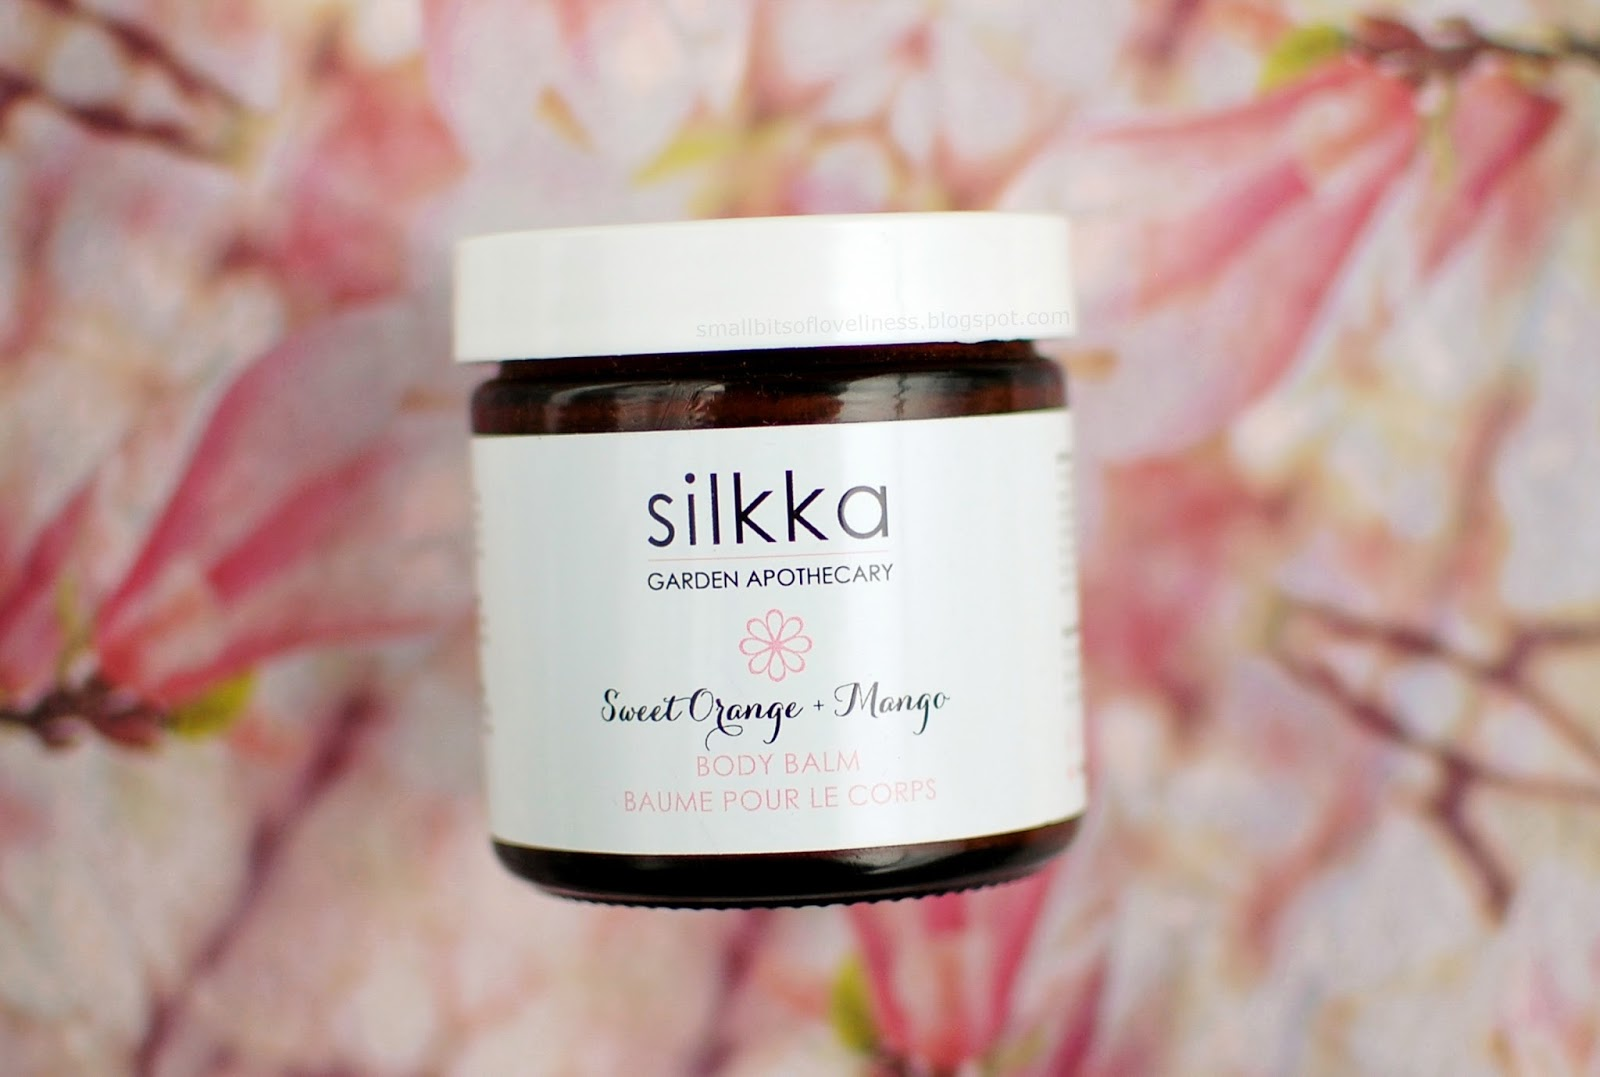 Silkka Garden Apothecary Sweet Orange + Mango Body Balm